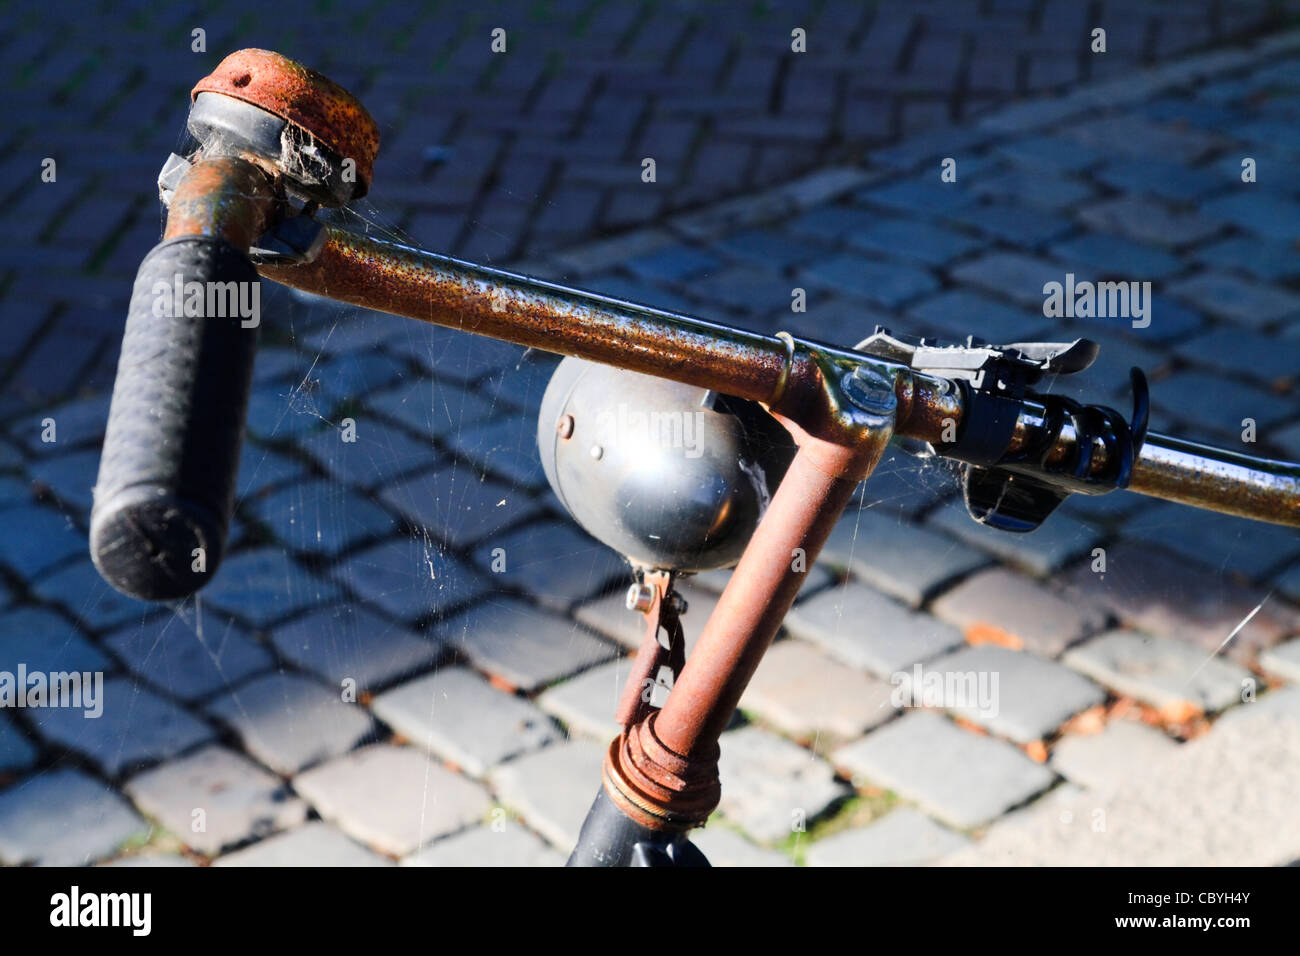 An old rusty dumped bicycle on a cobbled street - Stock Image